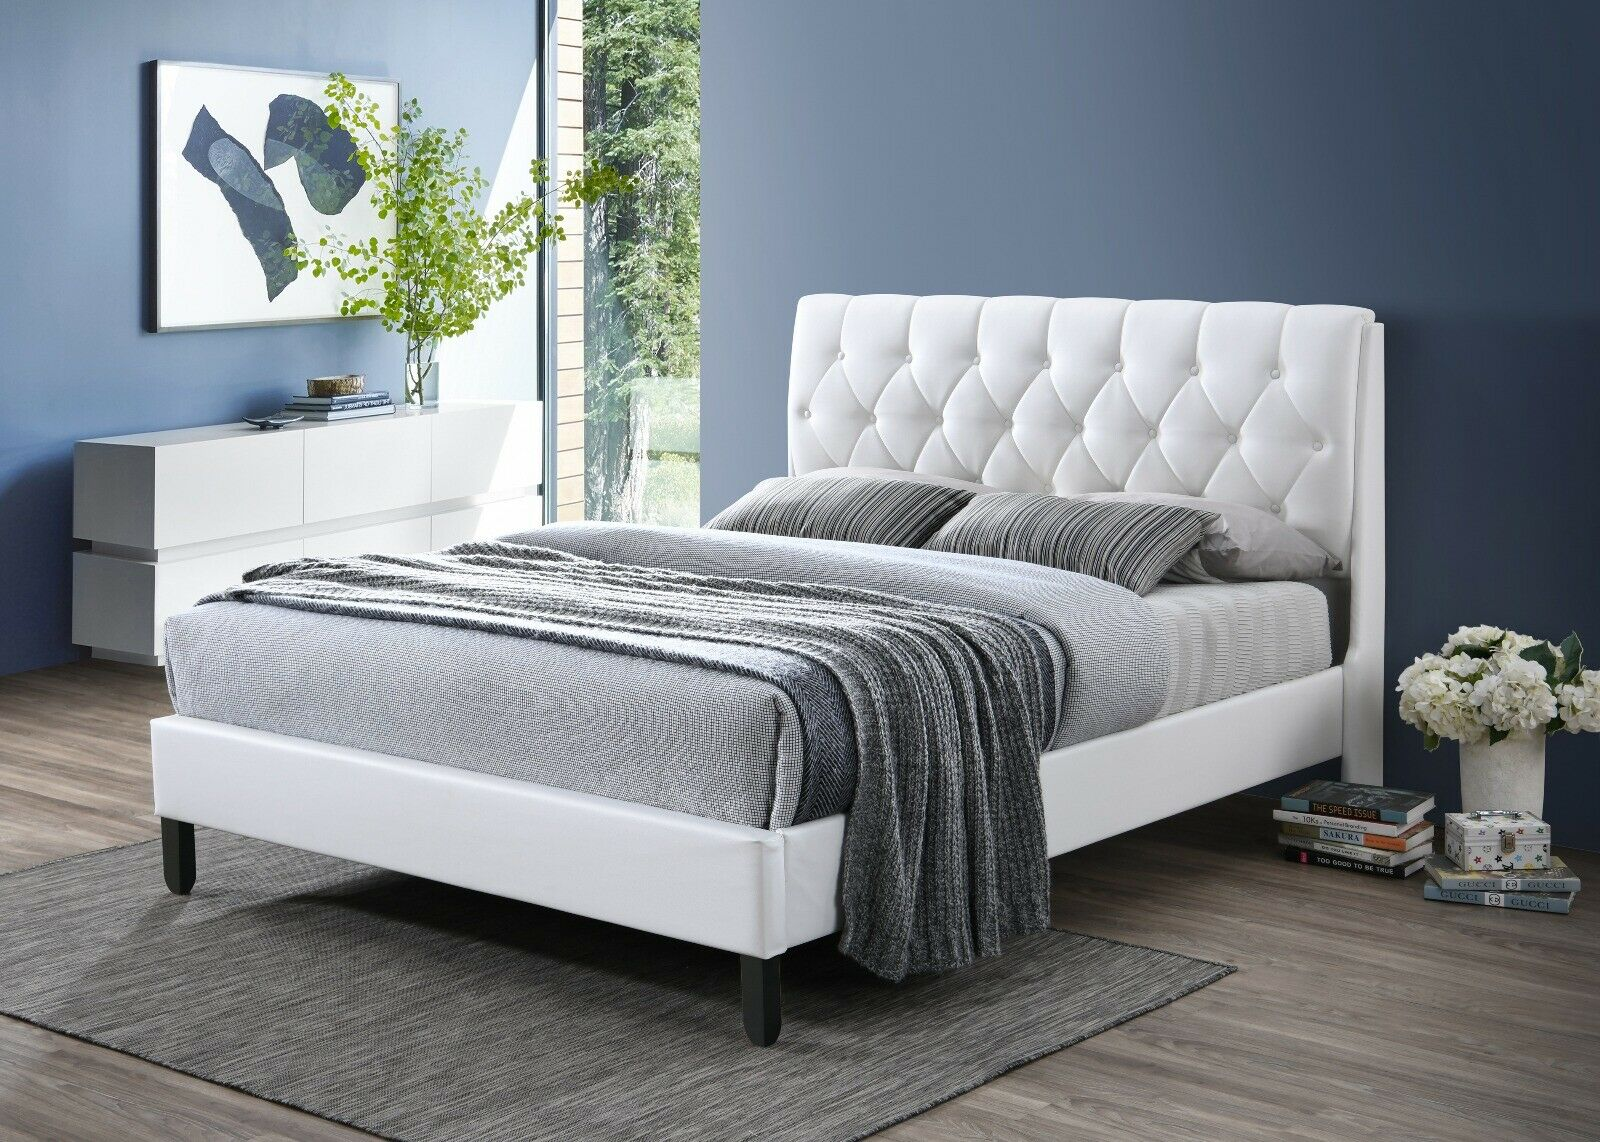 MALKO White Faux Leather Platform Bed with Built in Box Spri